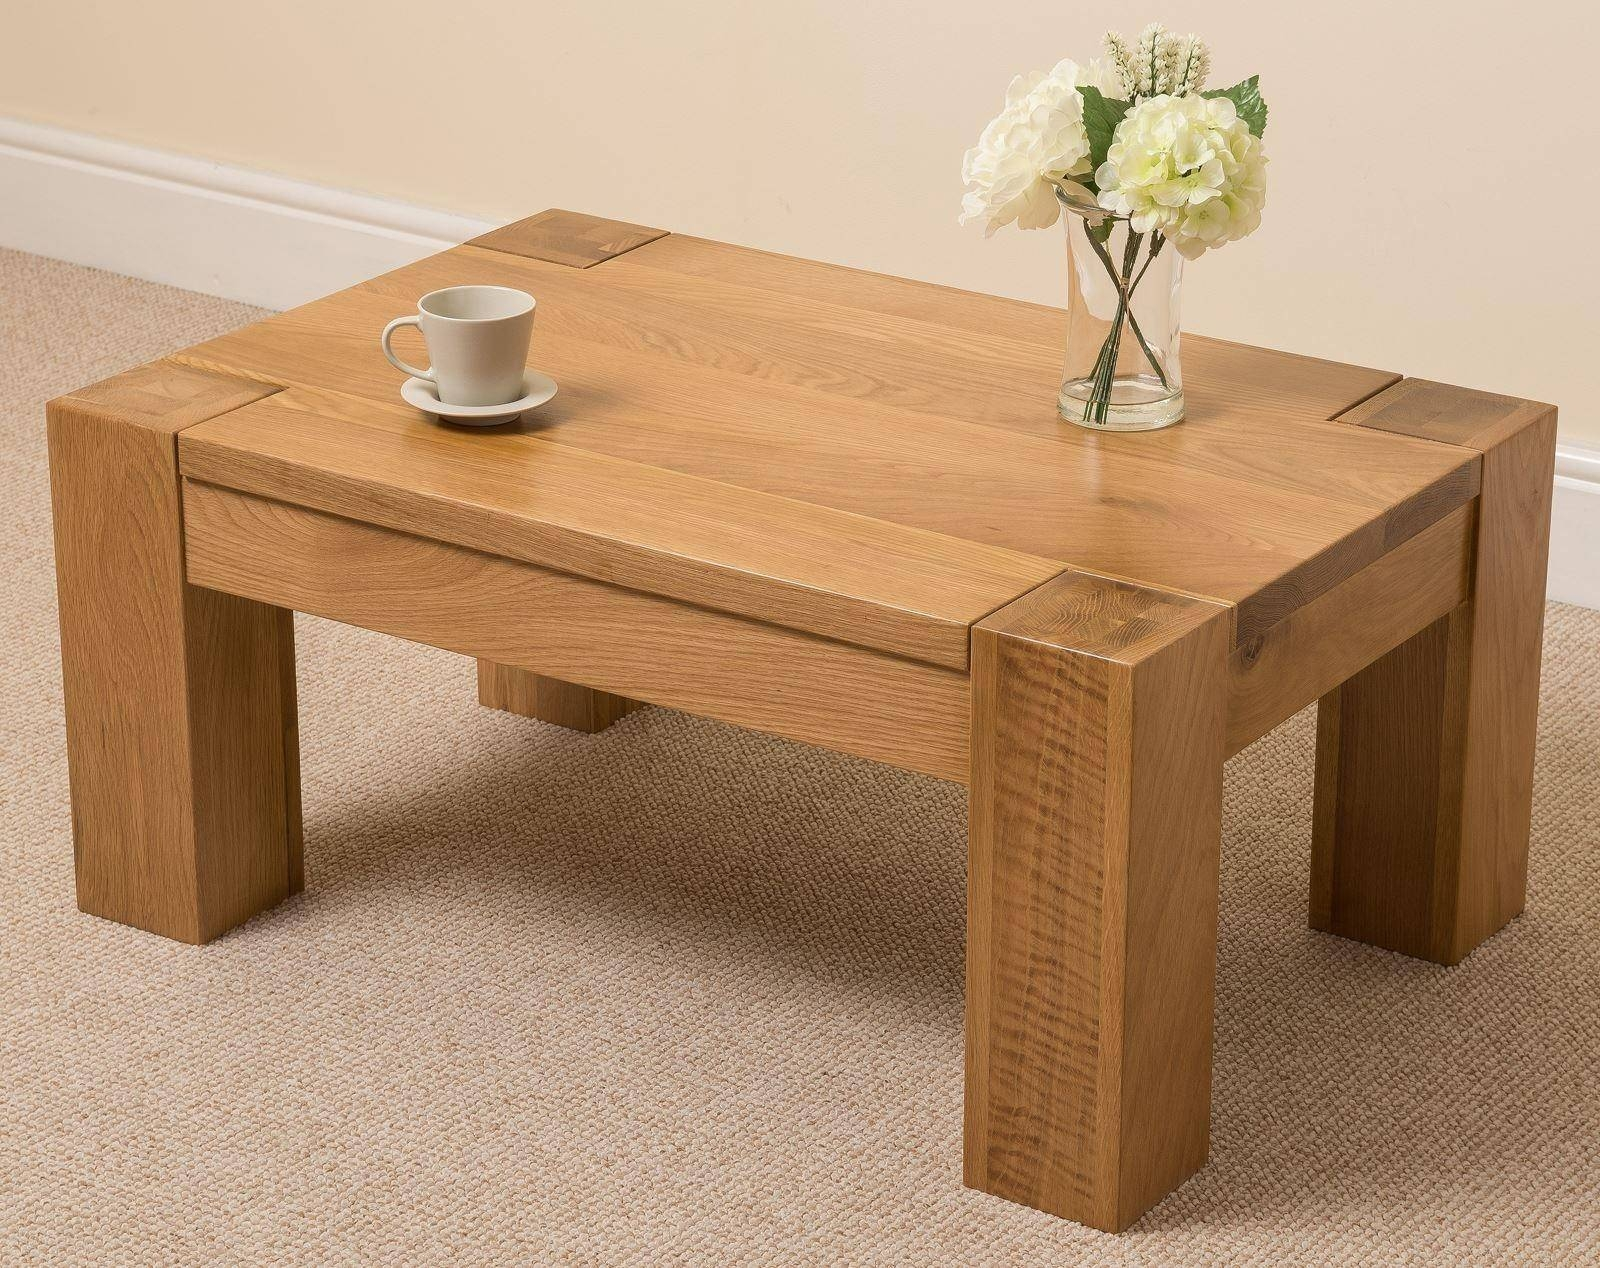 Kuba Solid Oak Coffee Table | Free Uk Delivery intended for Oak Wood Coffee Tables (Image 9 of 15)